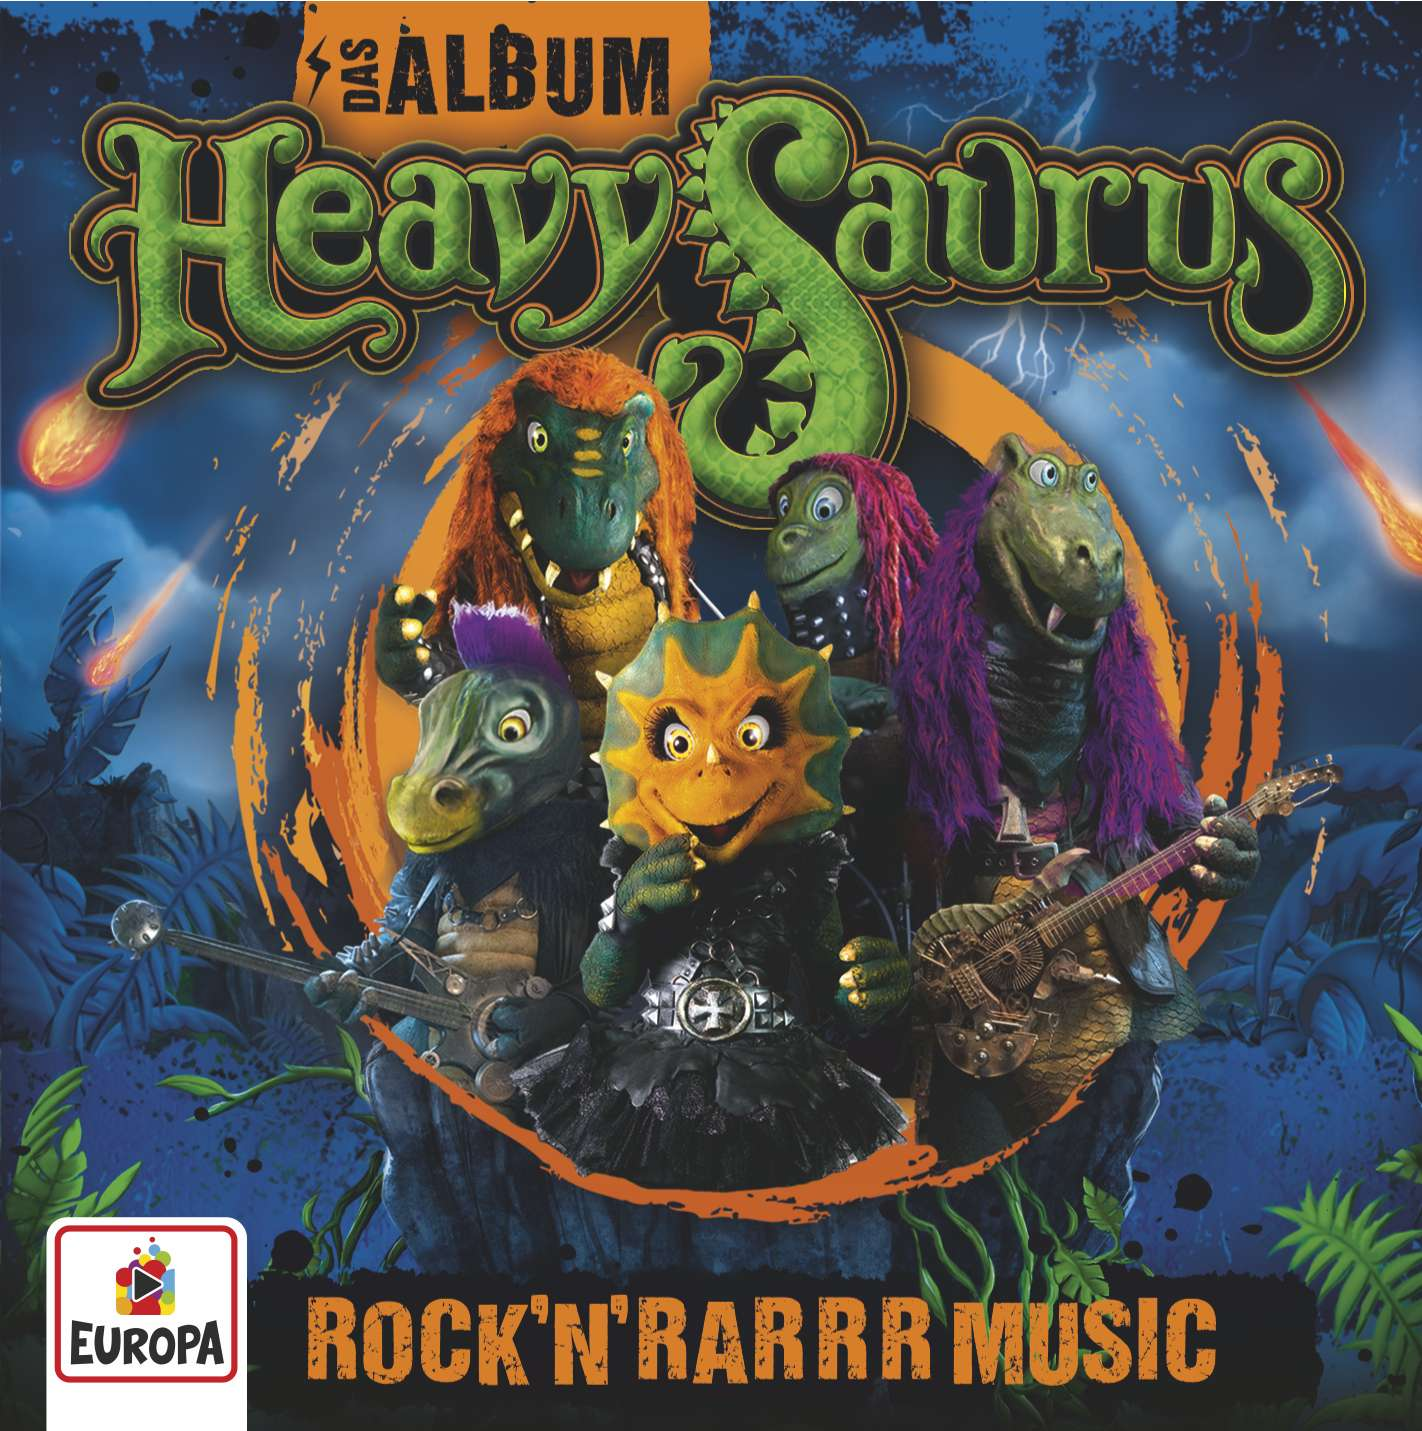 Heavysaurus: Das Album - Rock'n'Rarrr Music